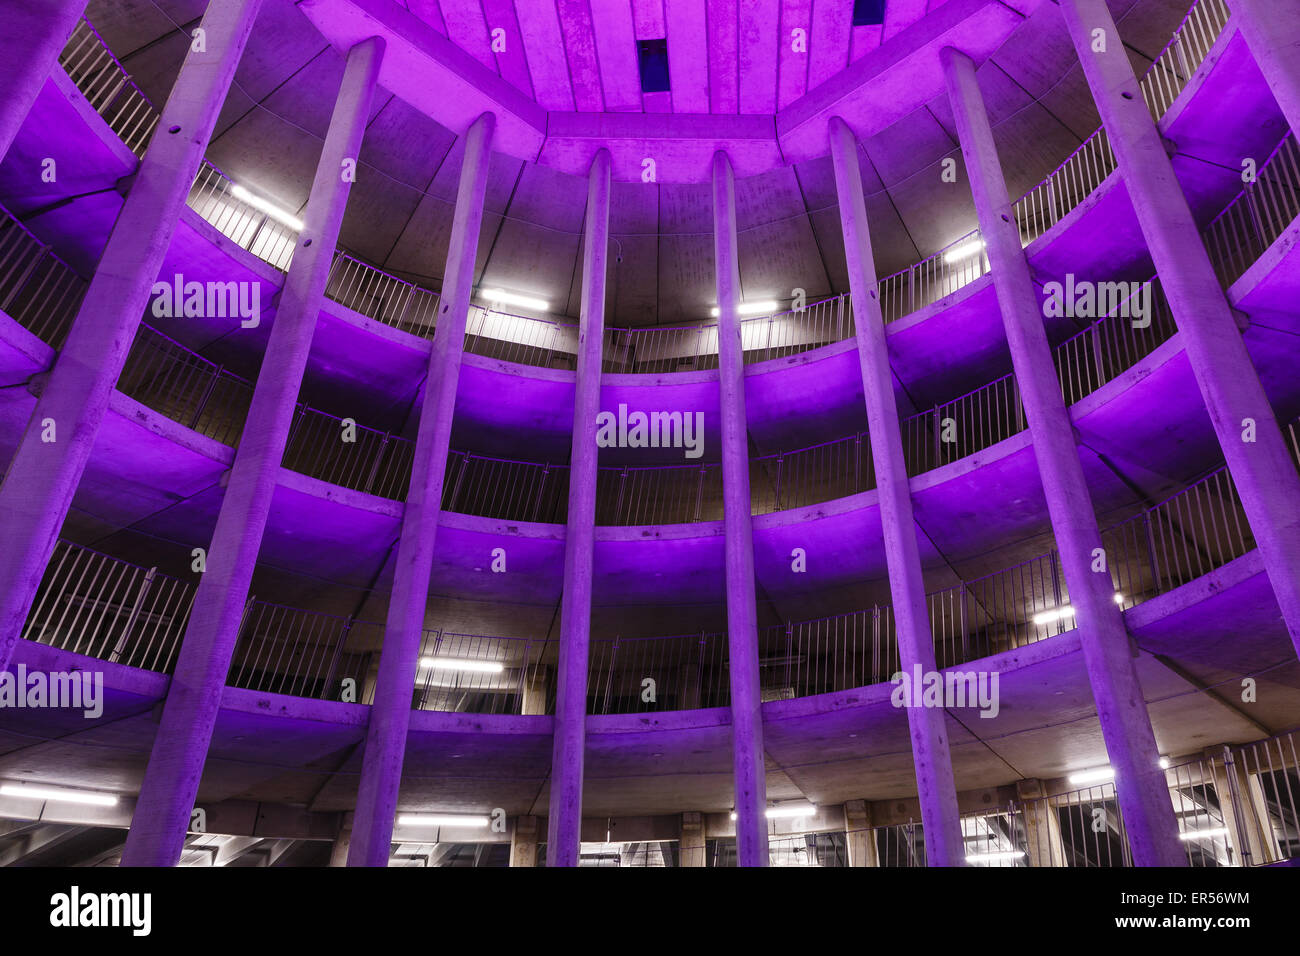 Spiral parking garage  Ossenmarkt in Groningen, The Netherlands. Purple color coming from the ever changing lighting system. Stock Photo